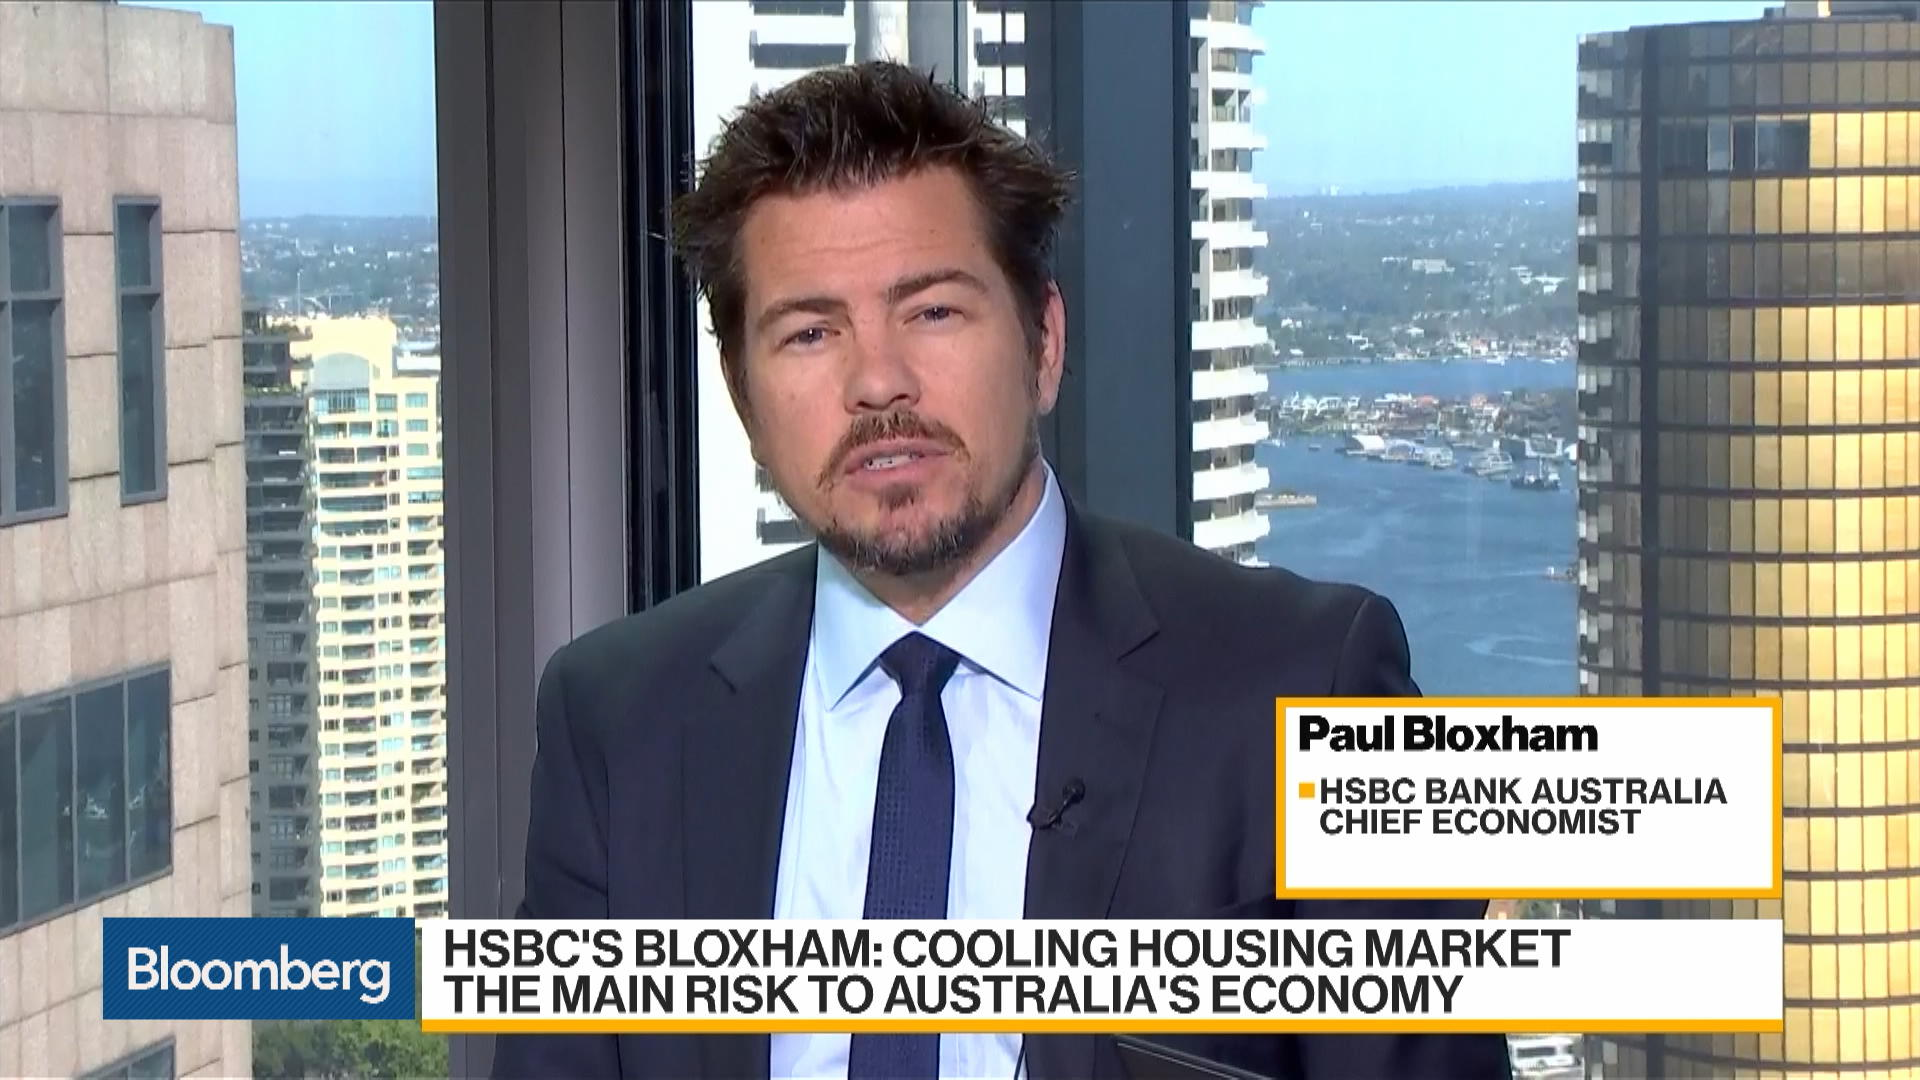 RBA Likely to Raise Rates in 2019, HSBC's Bloxham Says